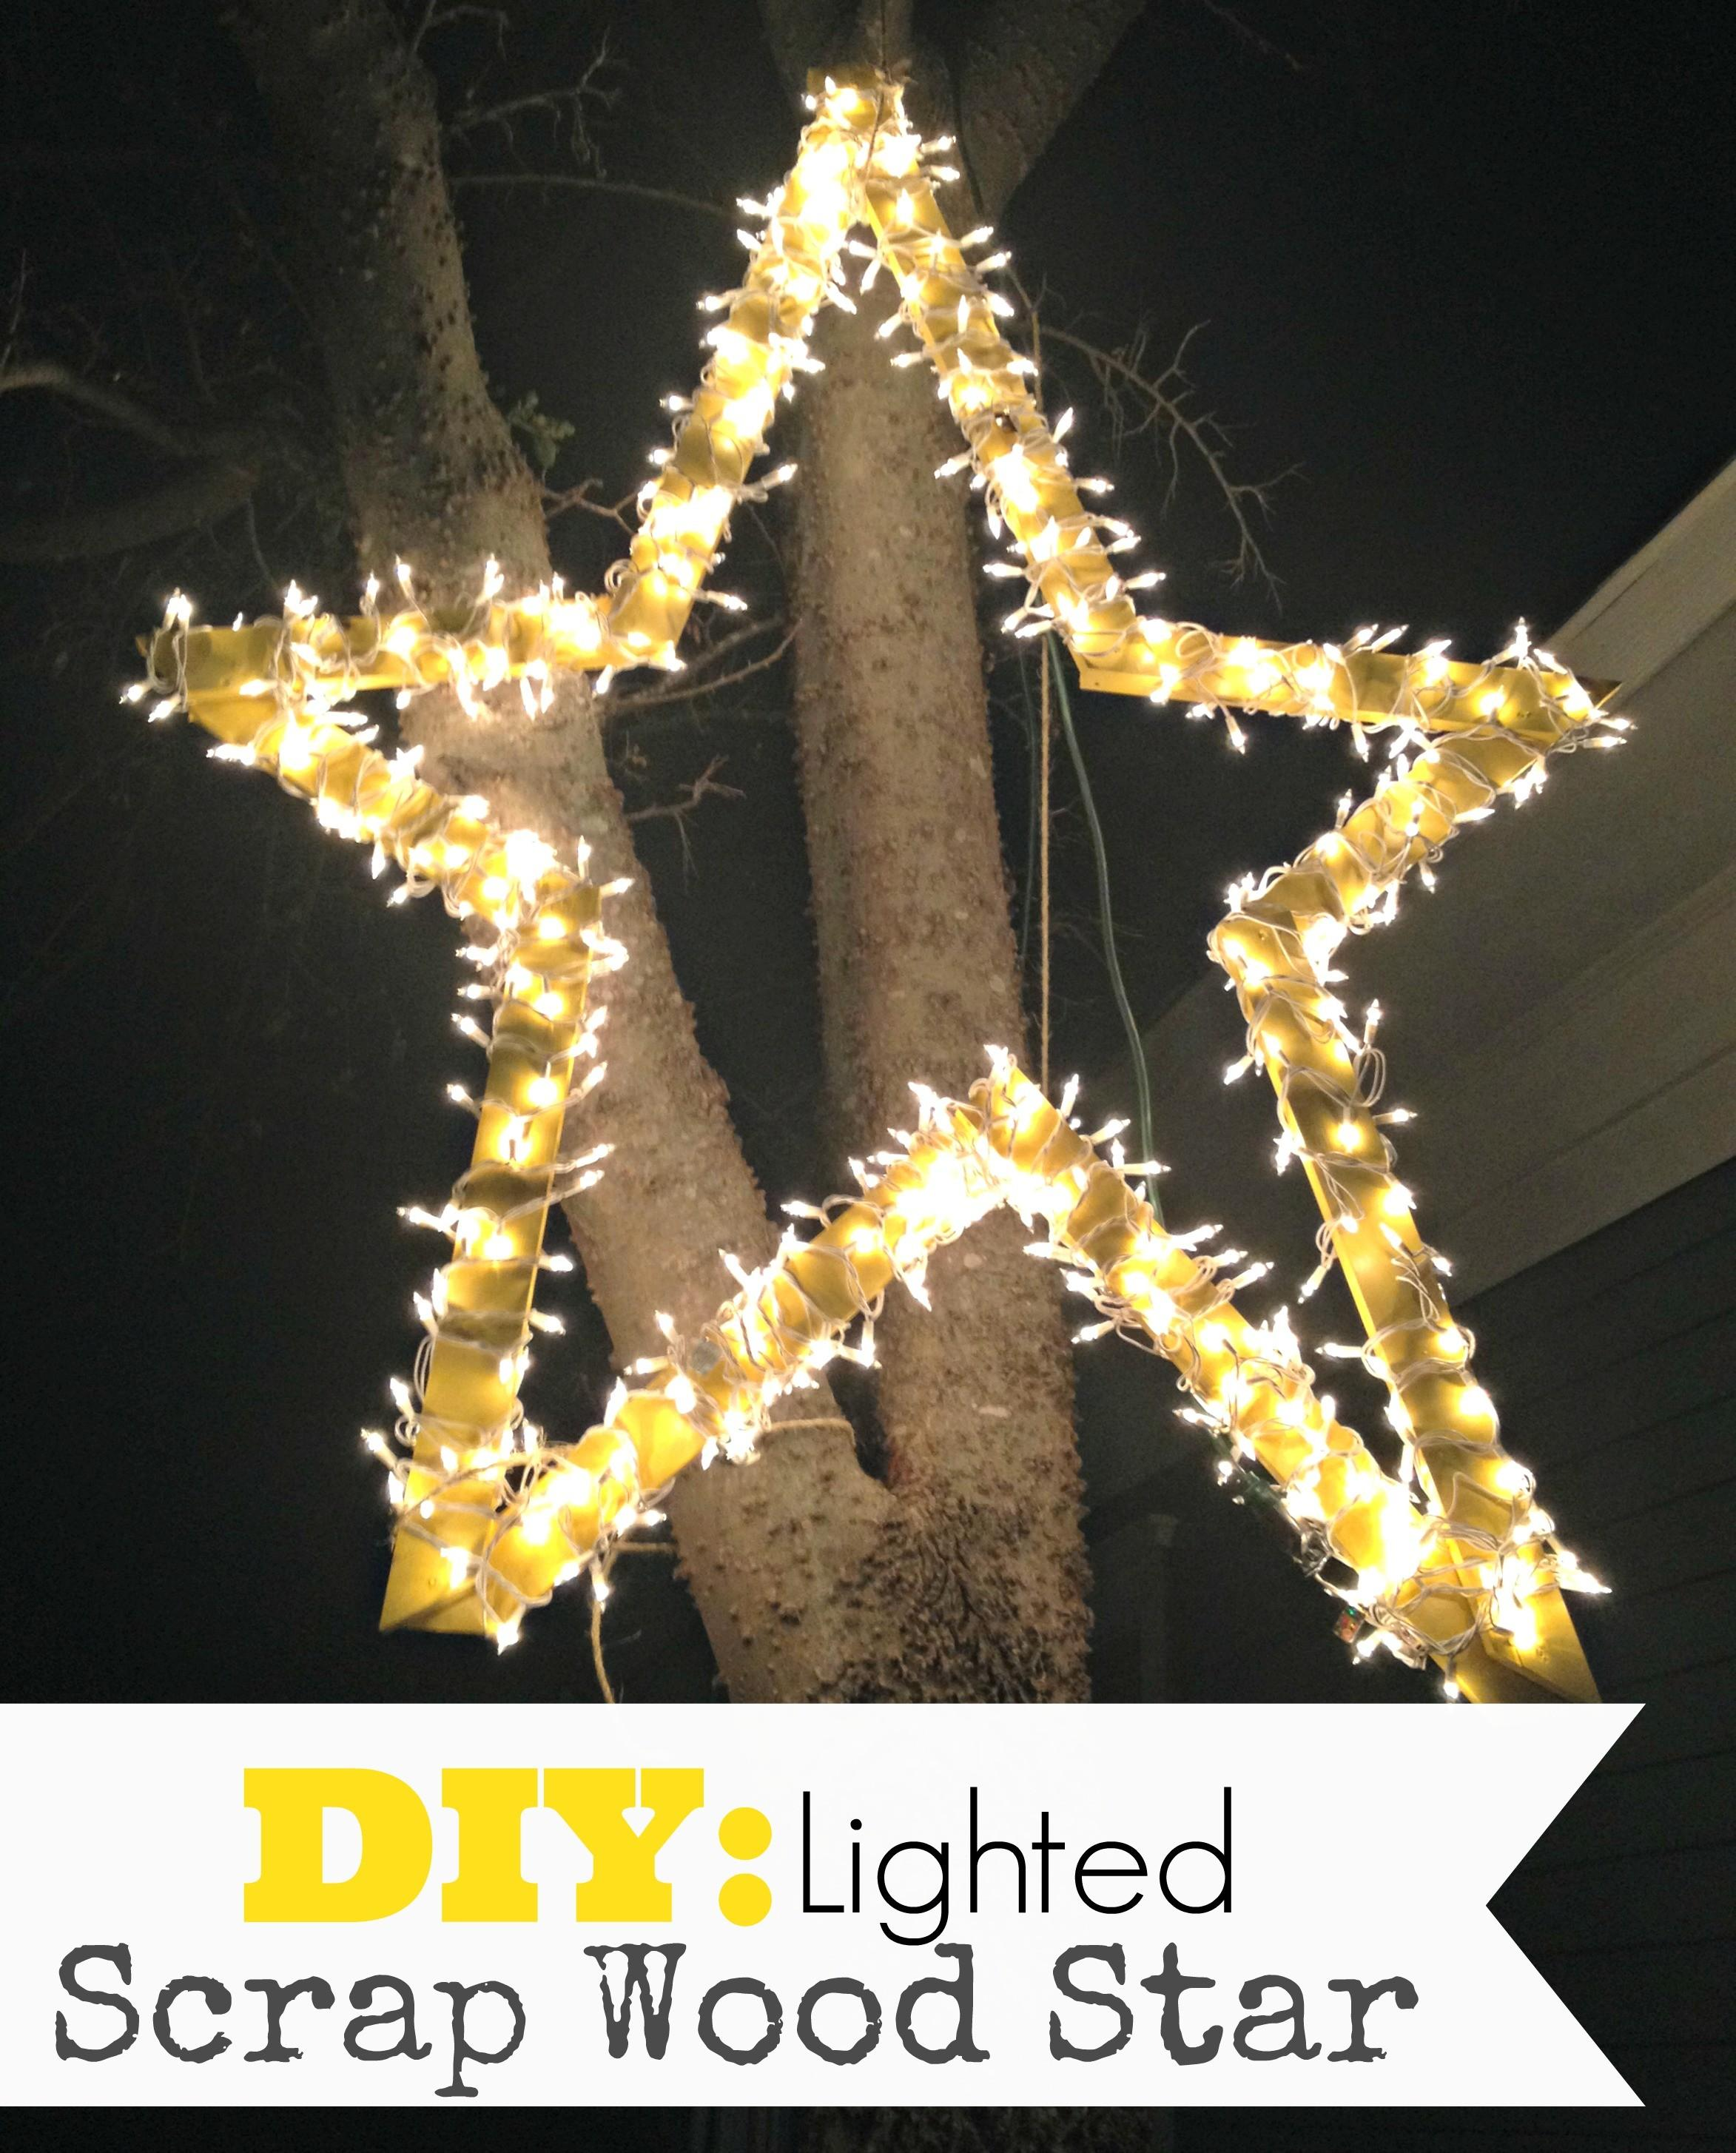 Diy Lighted Scrap Wood Star Upcycled Ugly